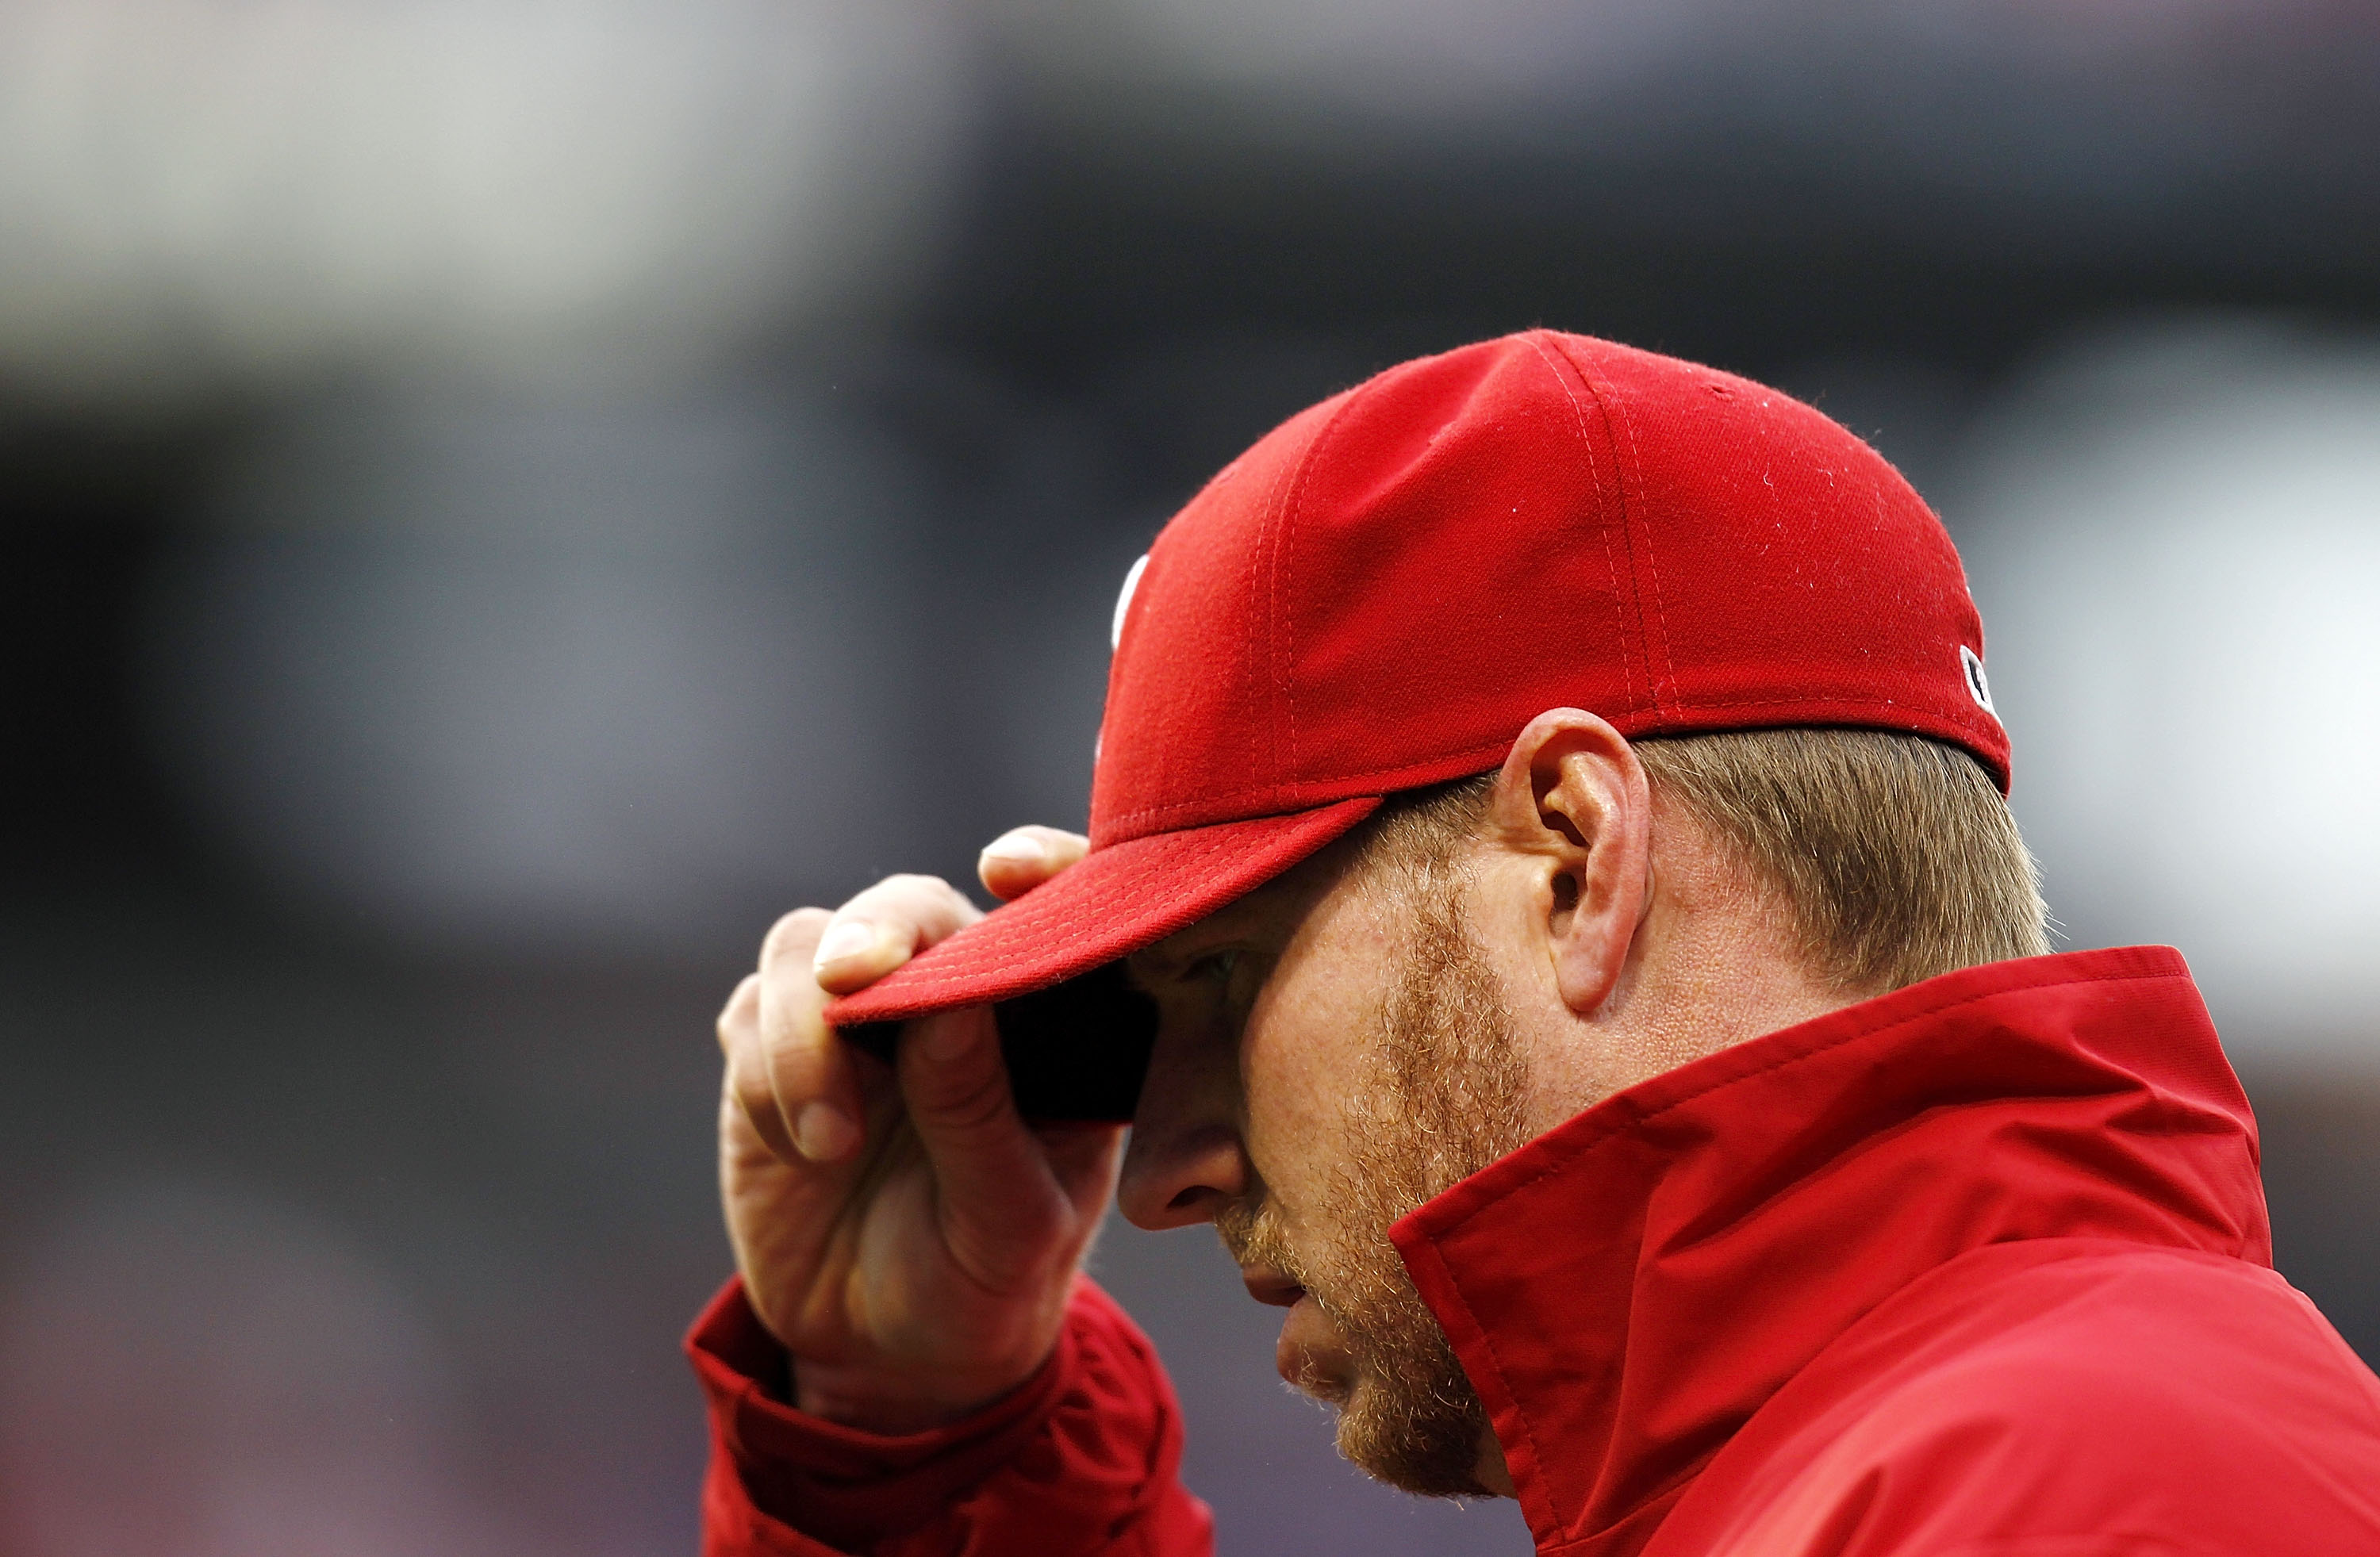 PHILADELPHIA - OCTOBER 06:  Roy Halladay #34 of the Philadelphia Phillies walks to the dugout in Game 1 of the NLDS against the Cincinnati Reds at Citizens Bank Park on October 6, 2010 in Philadelphia, Pennsylvania.  (Photo by Jeff Zelevansky/Getty Images